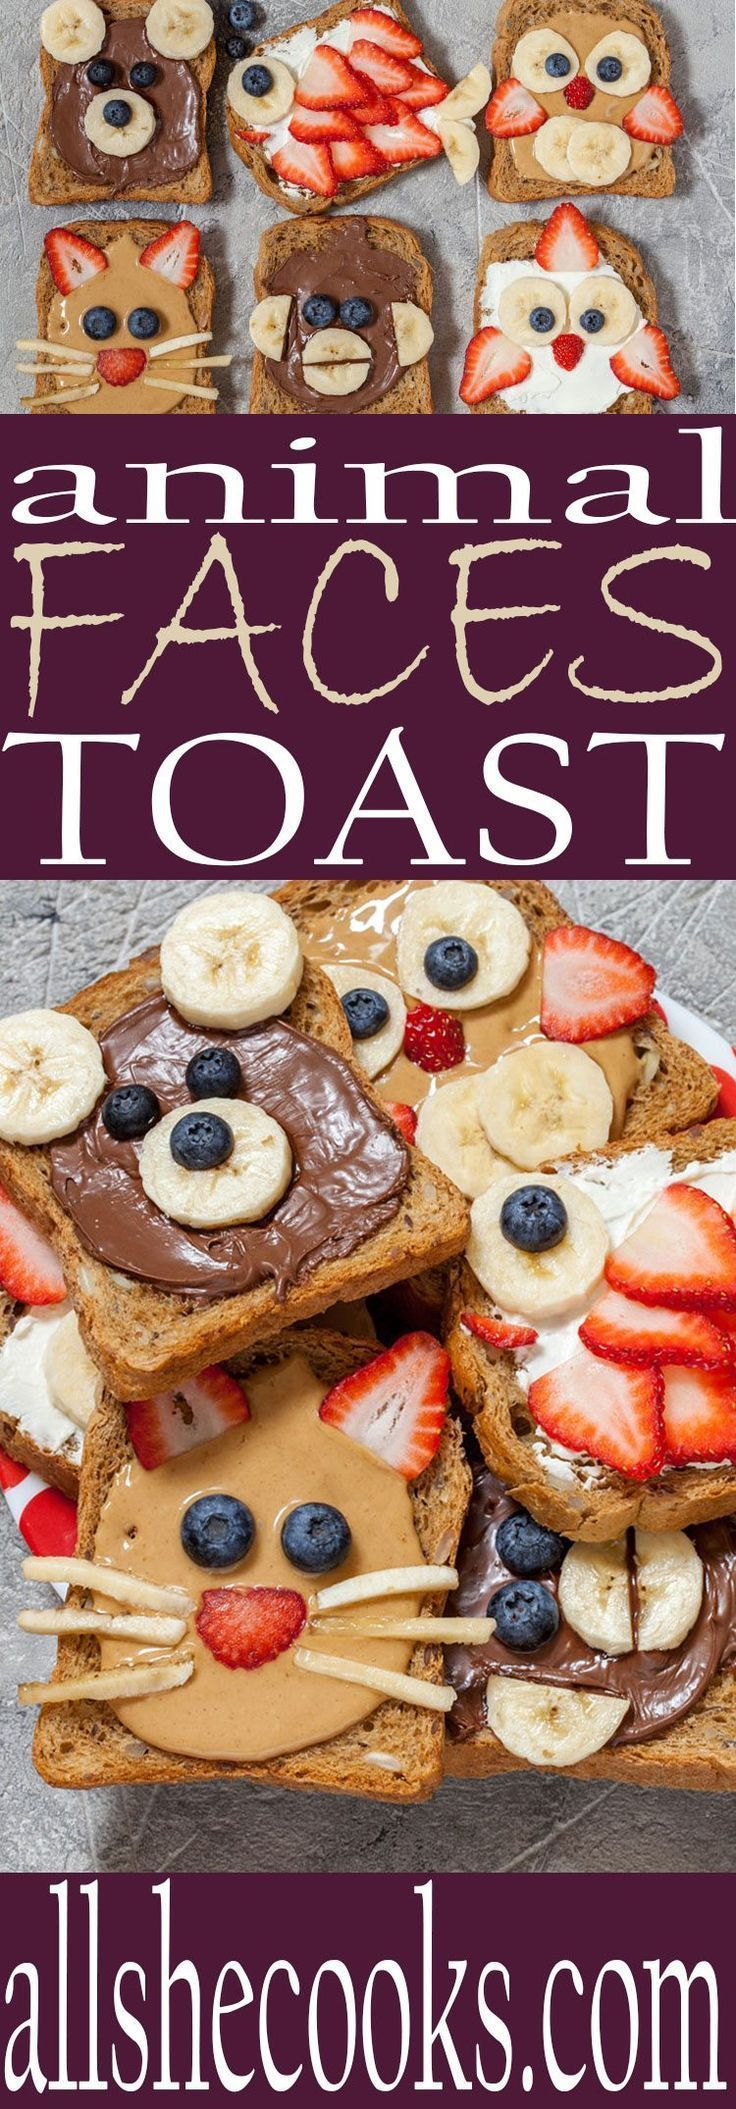 Healthy breakfast ideas for kids | Making food fun for kids is easy with these animal faces toast ideas.